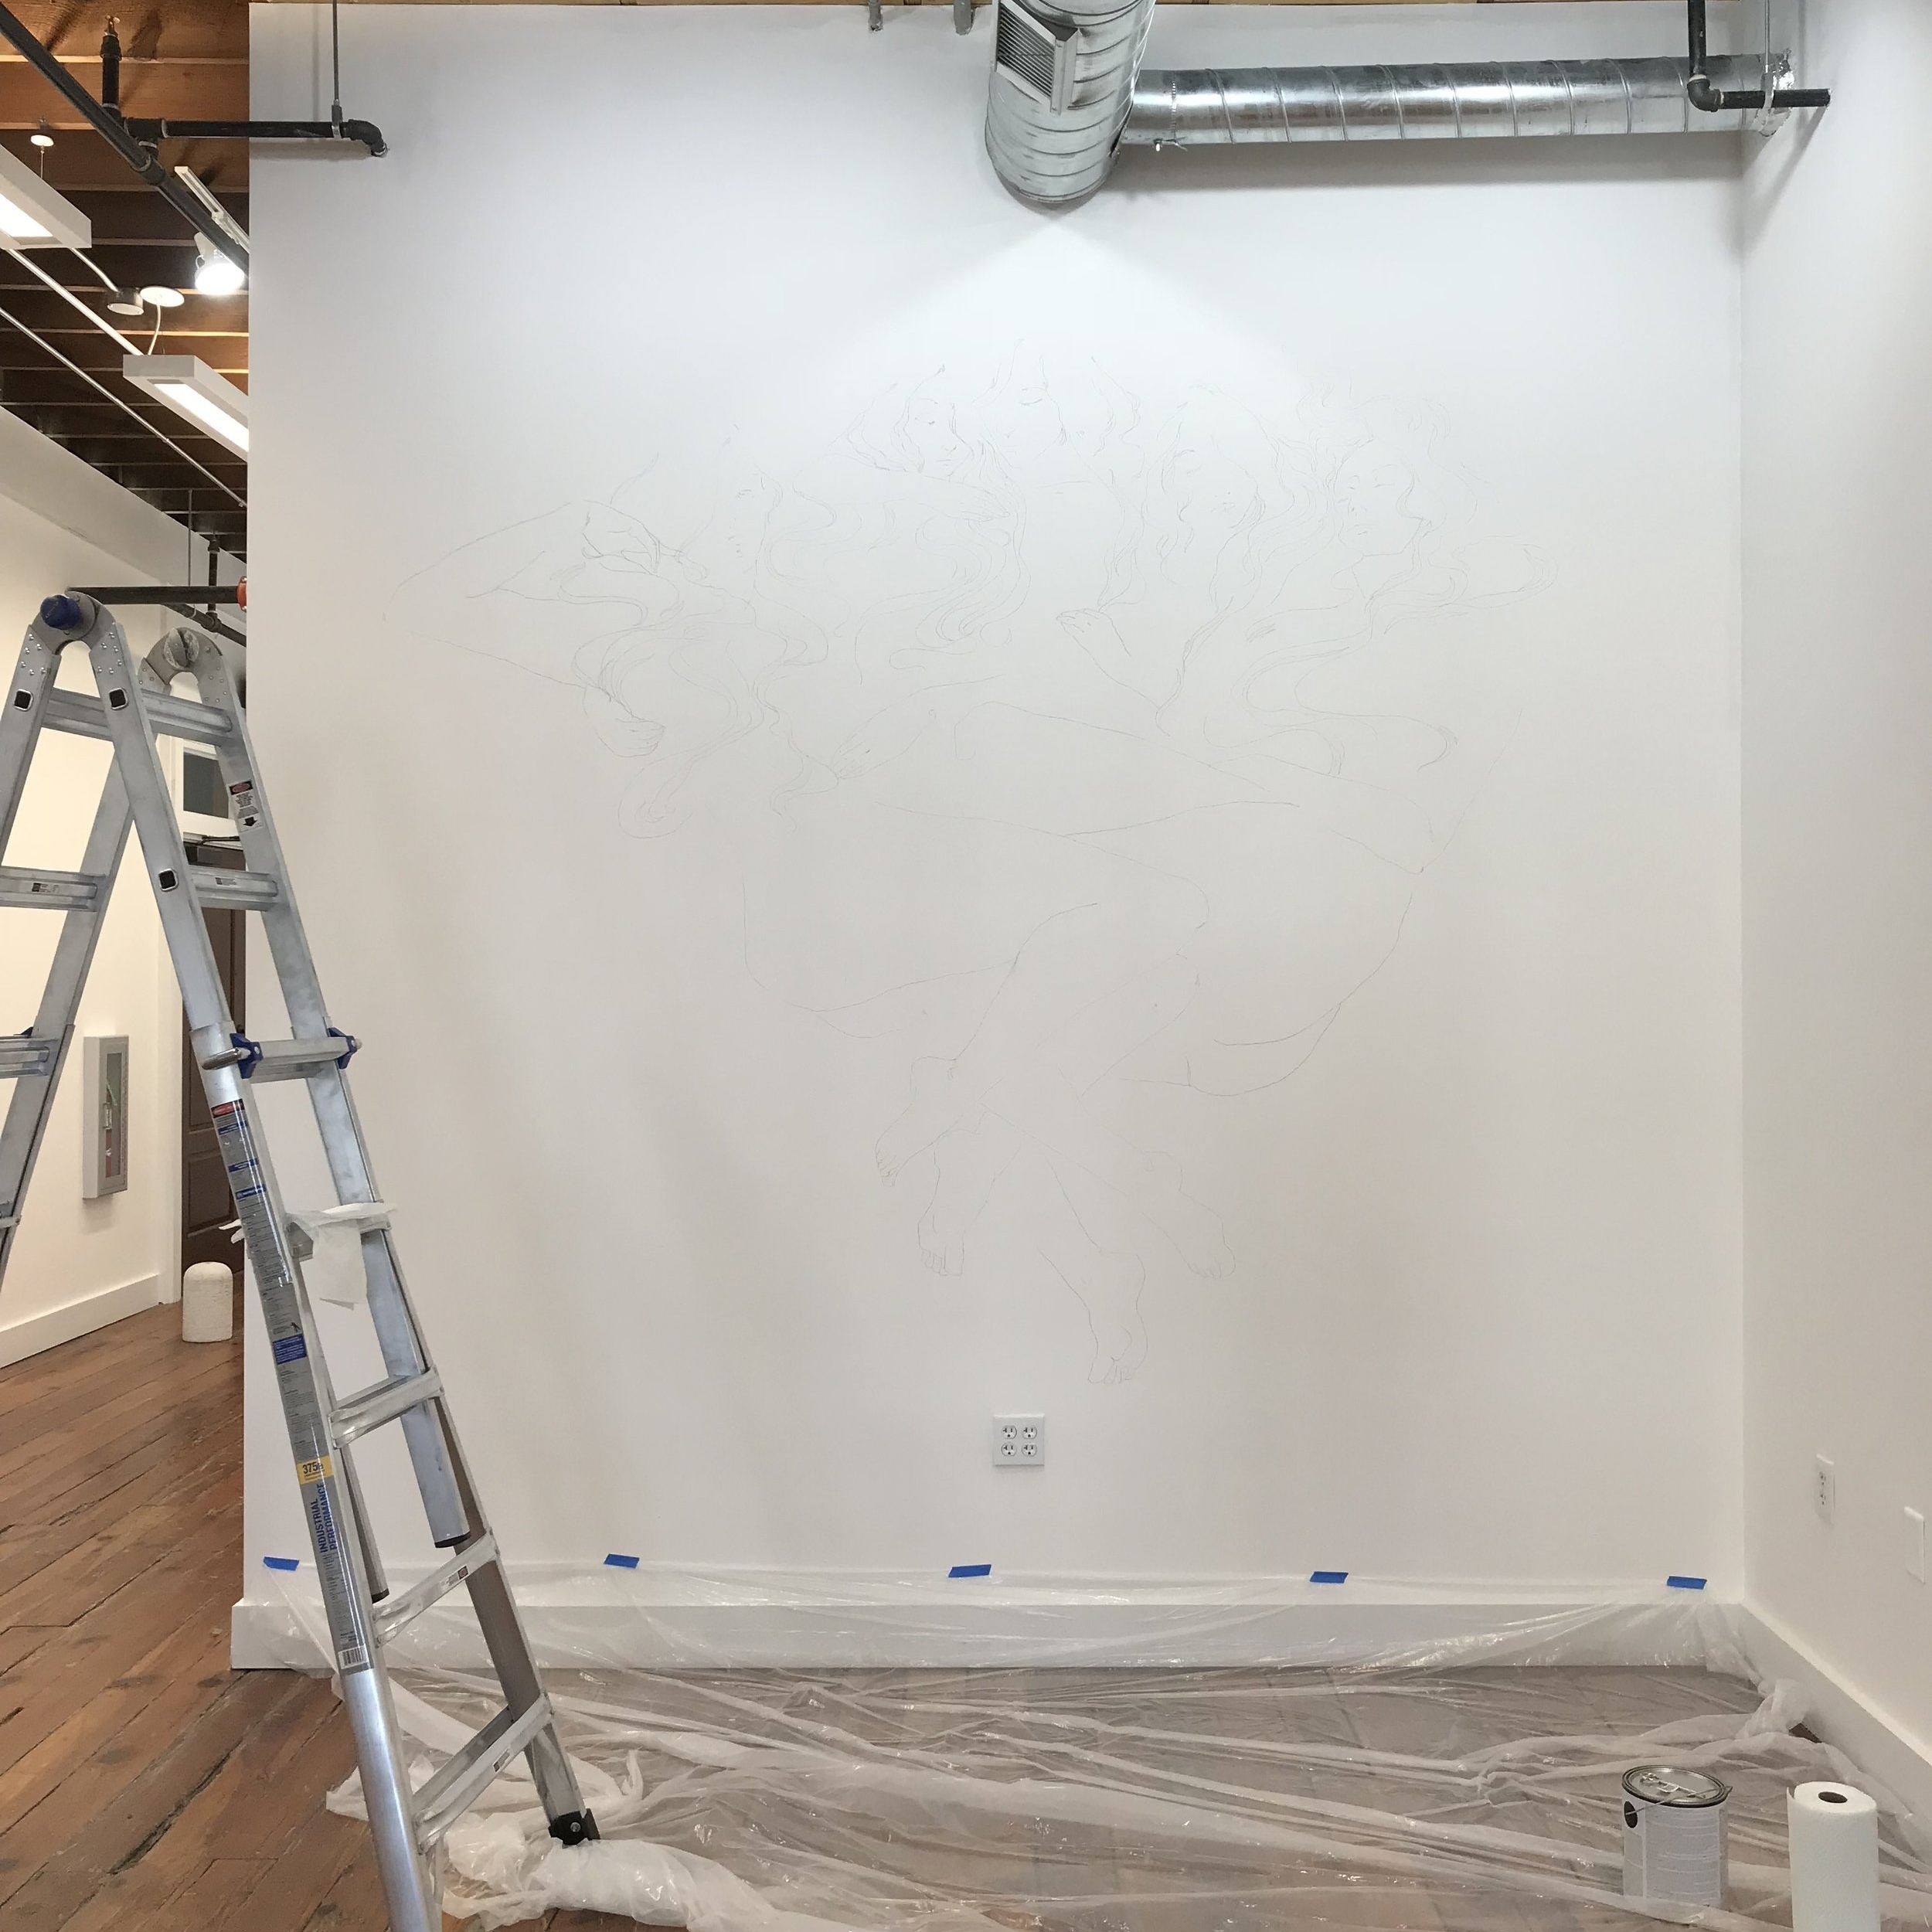 first step: draw the projected image onto the wall